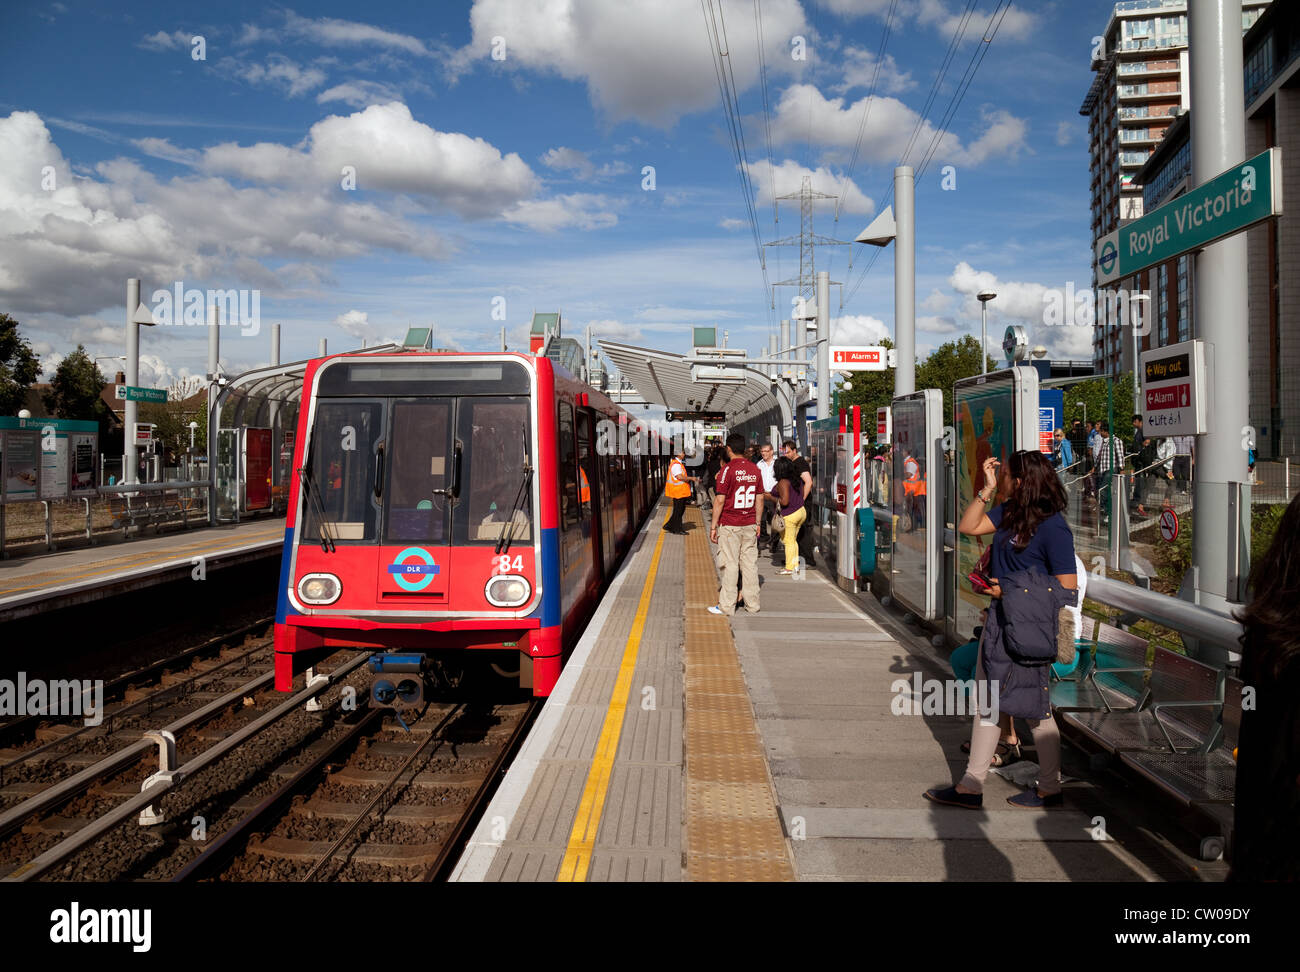 Passengers and a train at the DLR (Docklands Light Railway) station at Royal Victoria, London UK - Stock Image